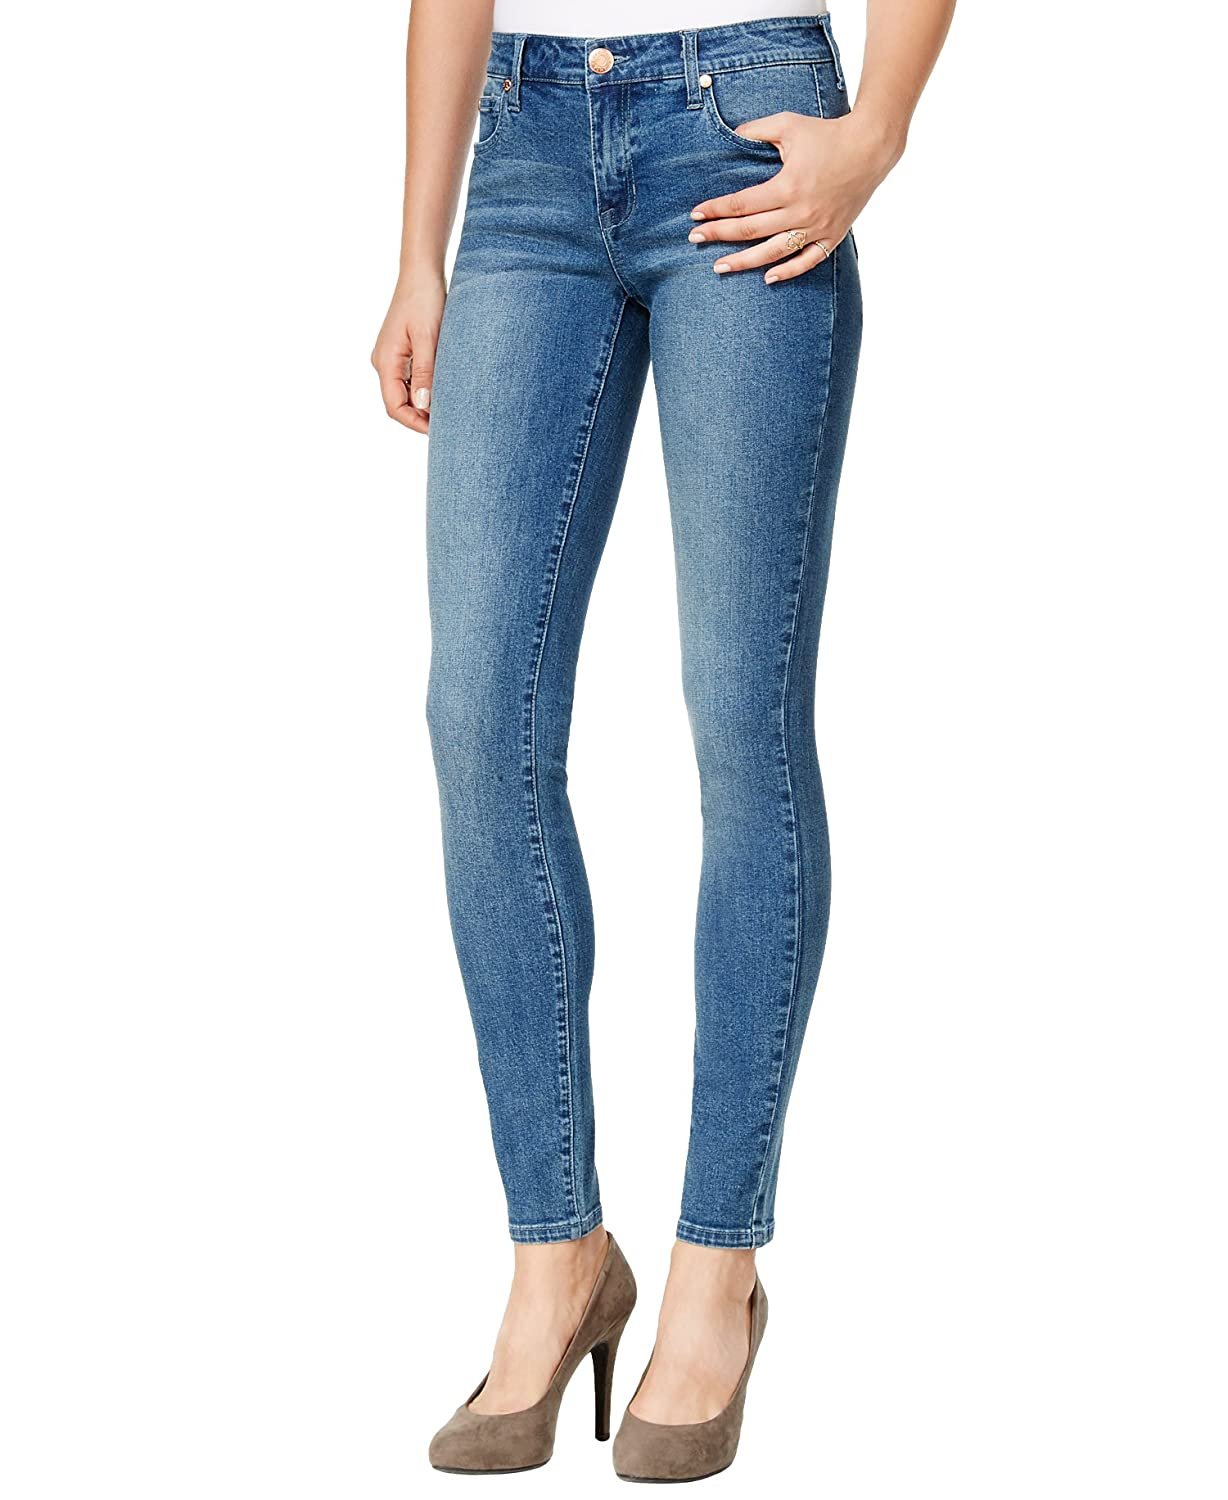 Celebrity Pink Body Love Juniors' The Lifter Skinny Jeans, Light Wash